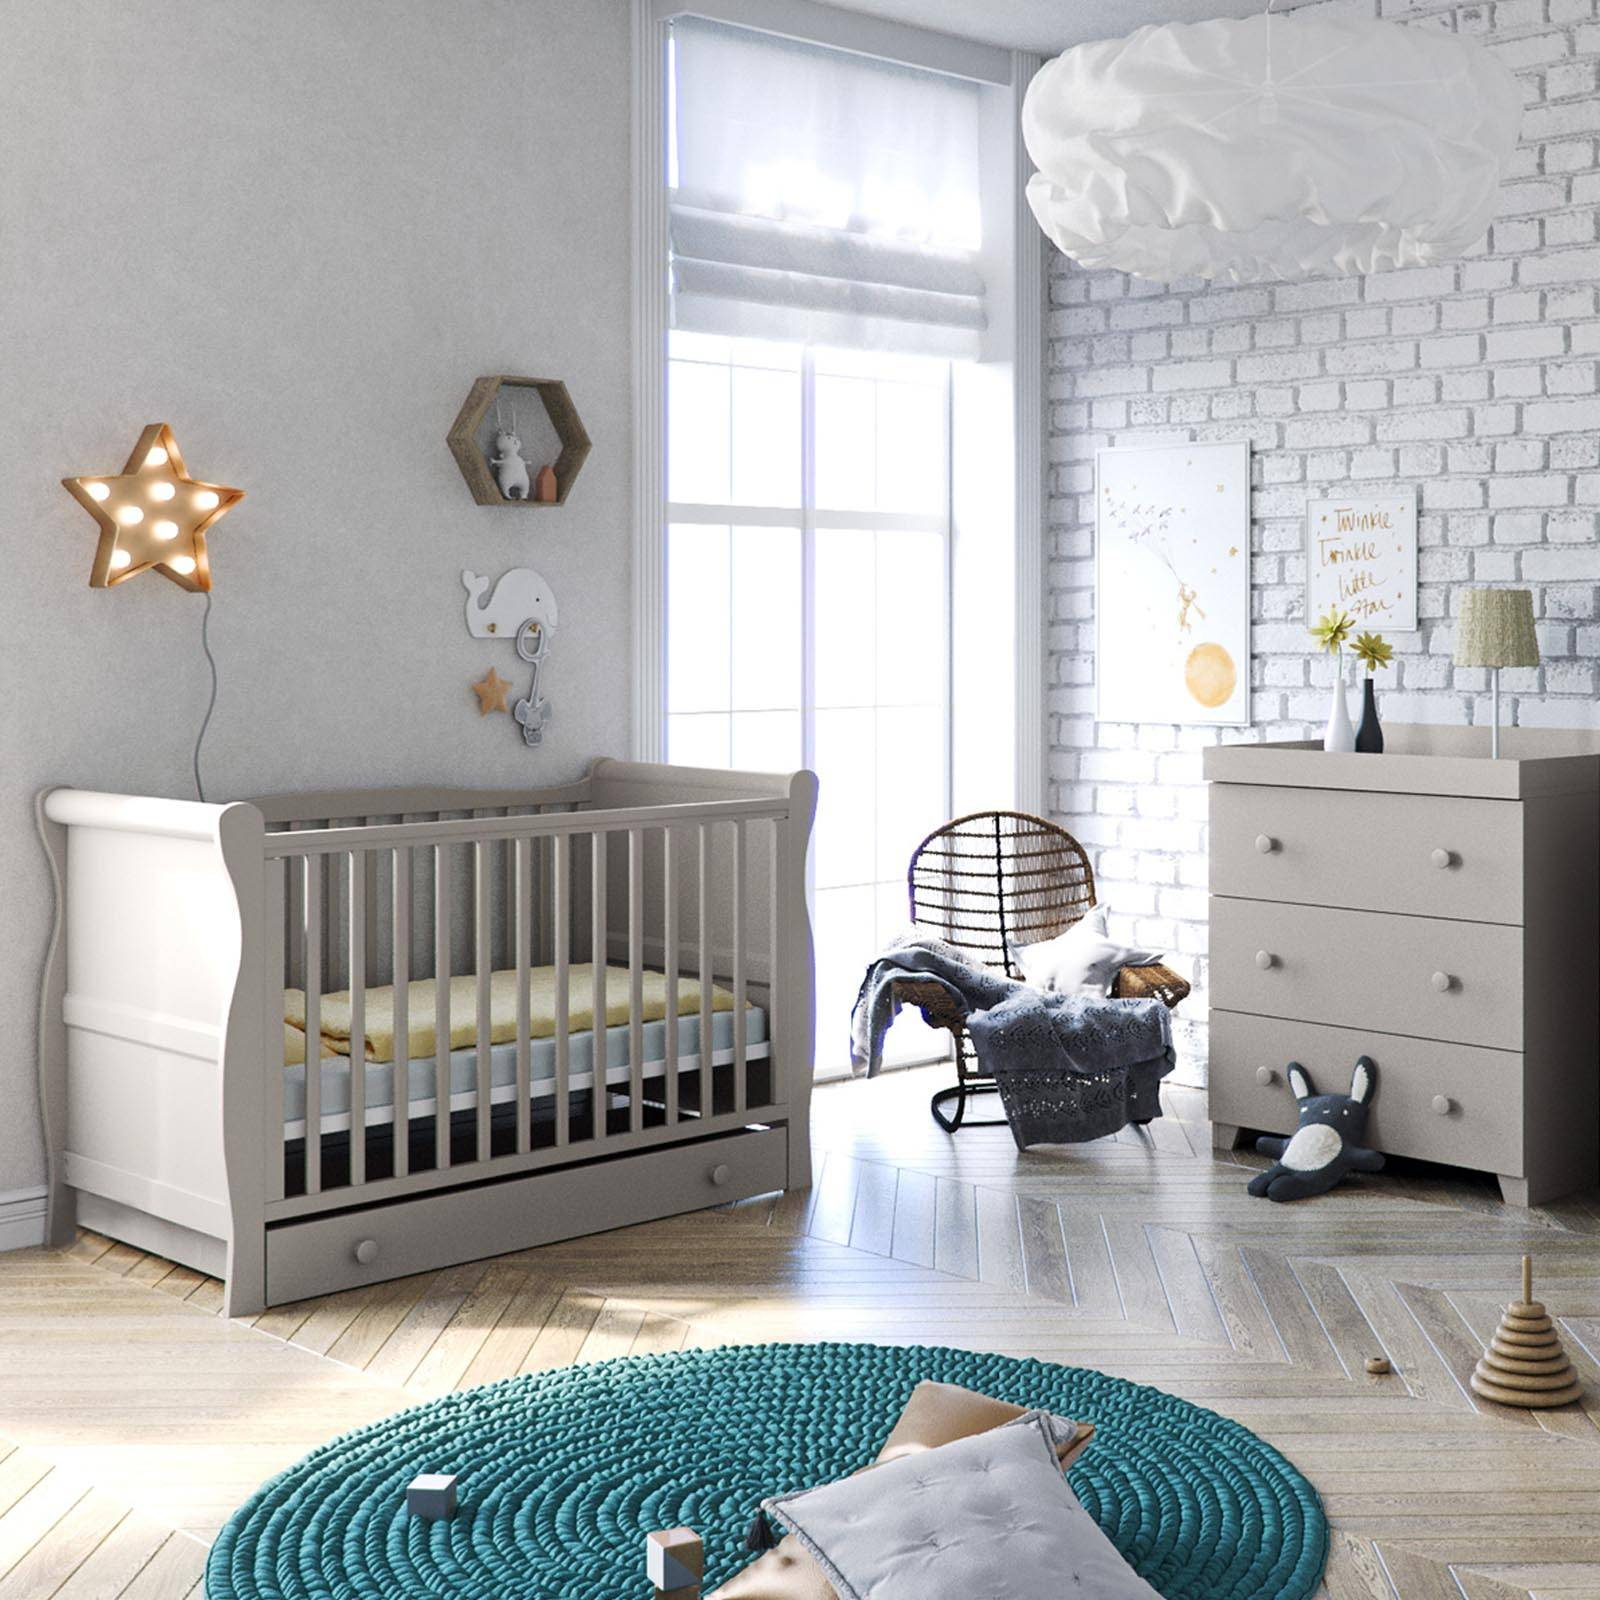 Little Acorns Sleigh Cot Bed 5 Piece Nursery Furniture Set With Deluxe 5inch Maxi Air Cool Mattress - Grey